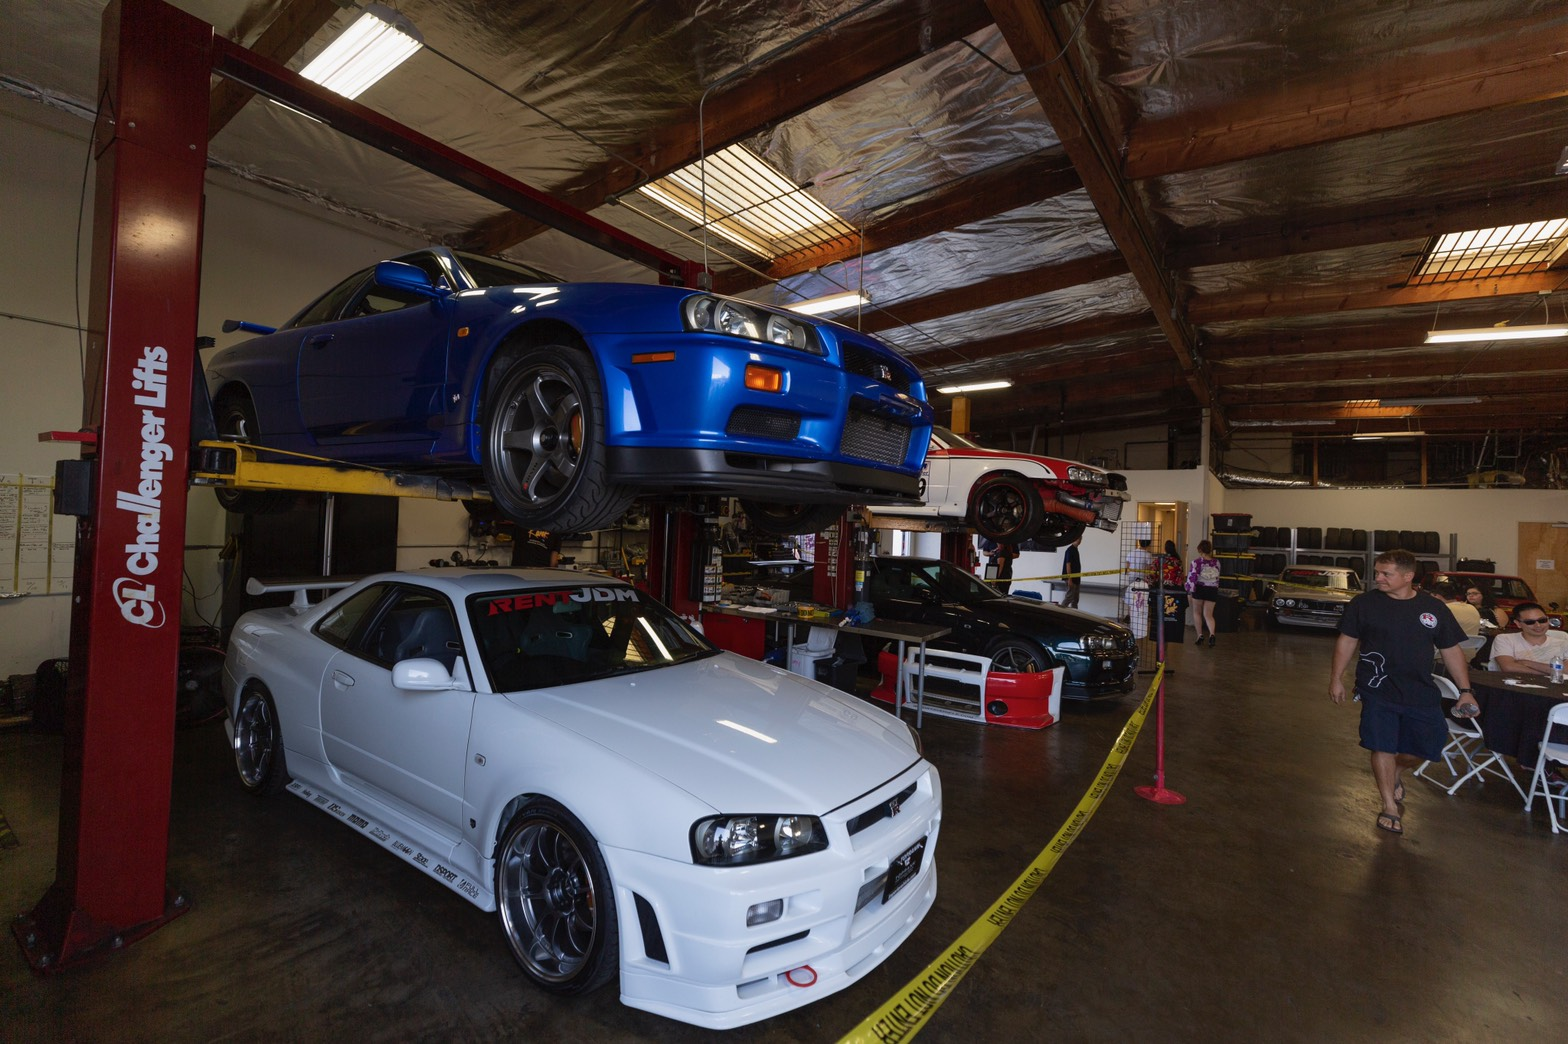 R34 GT-R Motorex white and Bayside Blue